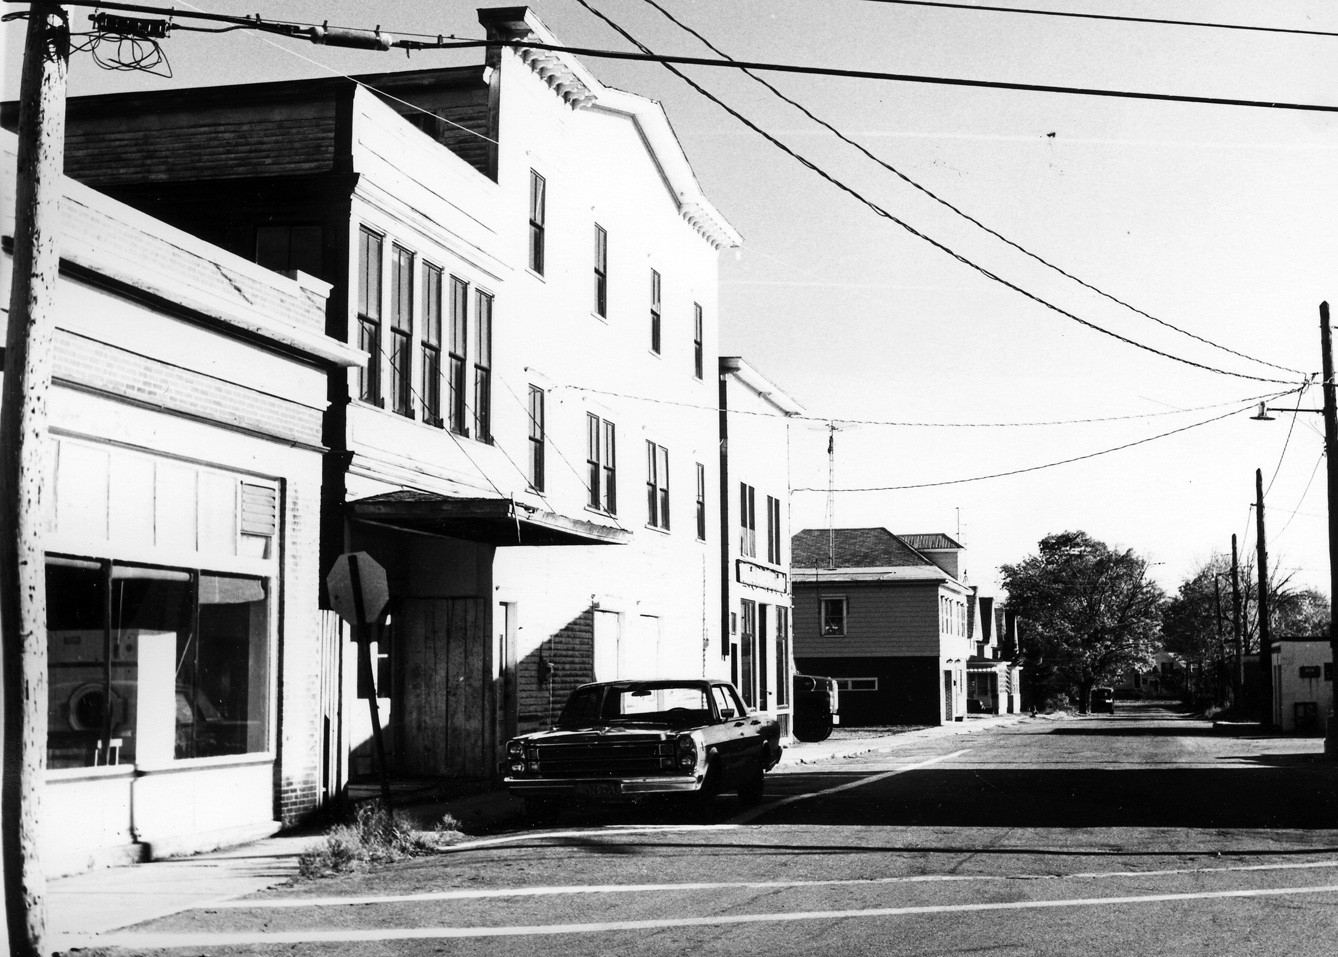 Rick Schneider, who graduated from Nasson College in 1971 and is an active member of the Nasson Alumni Association, is looking for photos, stories and memorabilia about Sanford's old theaters – including this one, the Gowen Theater, in Springvale. It was demolished during urban renewal in the 1970s.